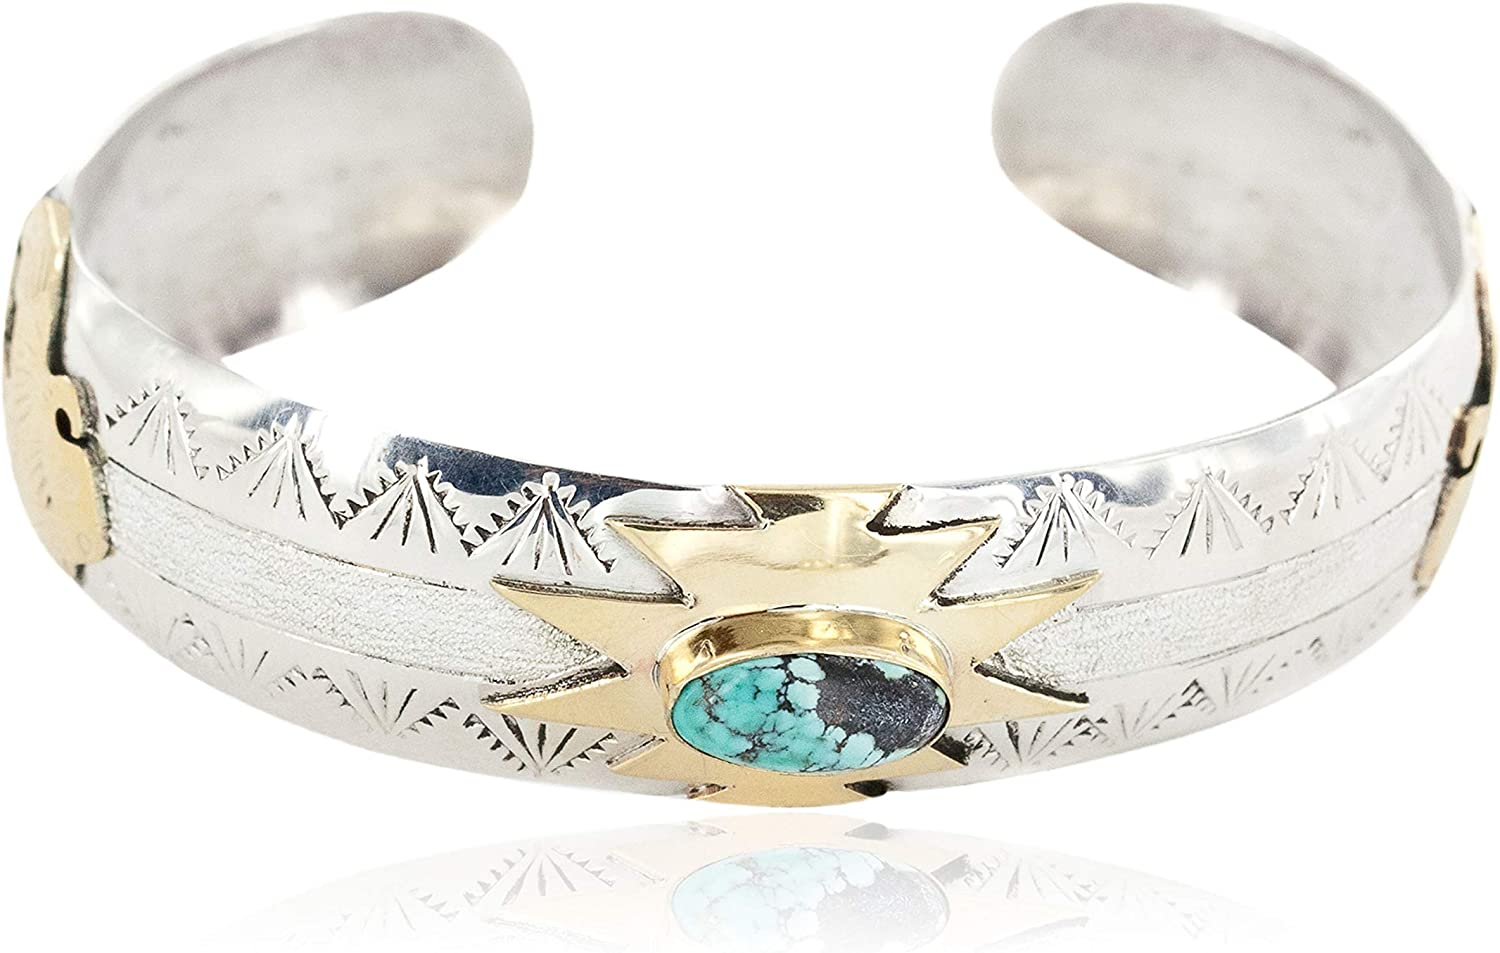 $510Tag 12Ktgf Silver Certified Buffalo Navajo Spiderweb Turquoise Bracelet 12970-2 gemacht durch Loma Siiva